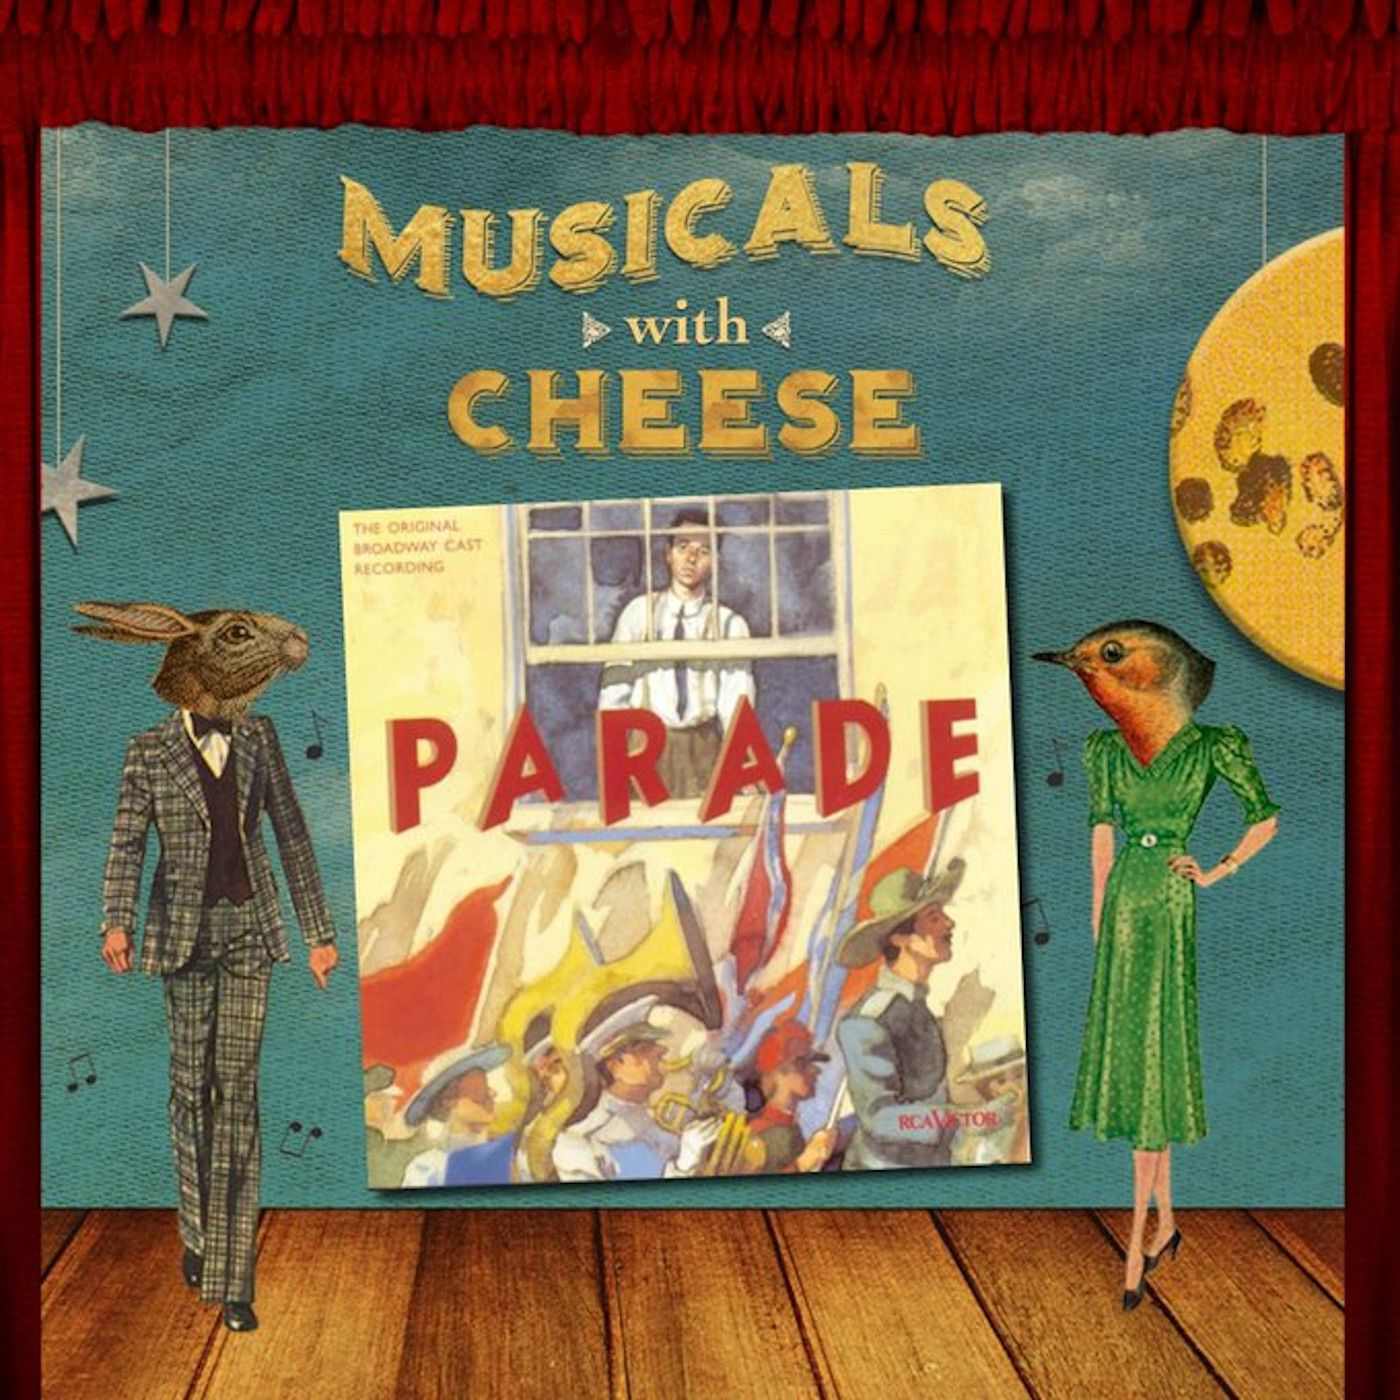 Musicals With Cheese Episode 42 Parade